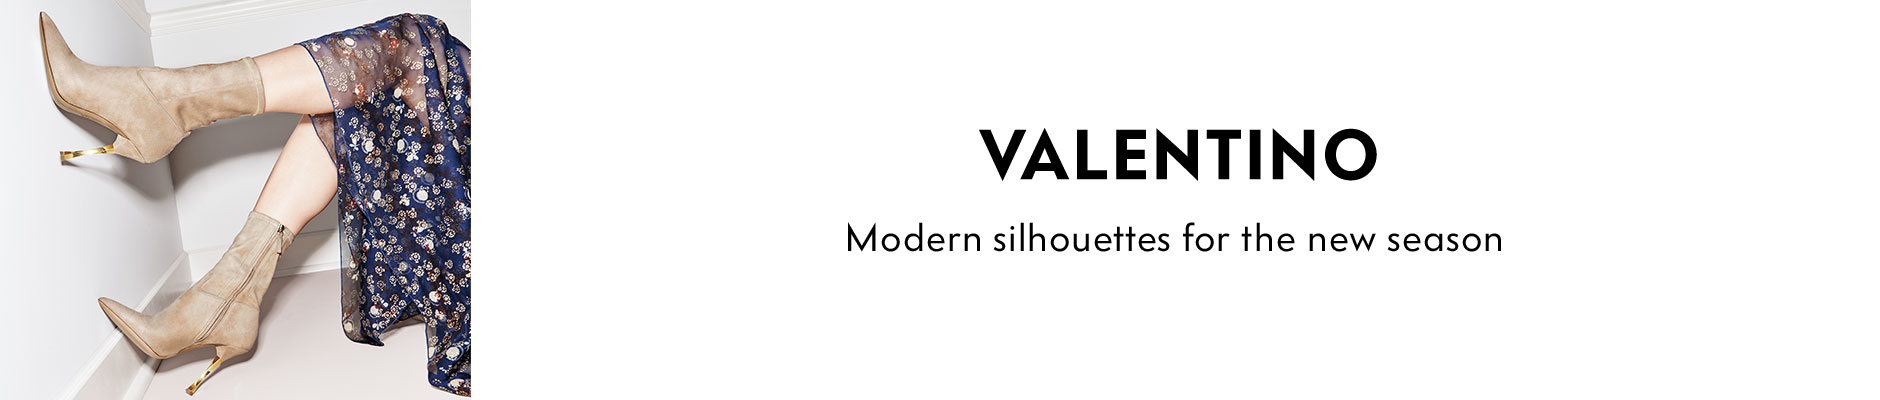 Valentino - Modern silhouettes for the new season